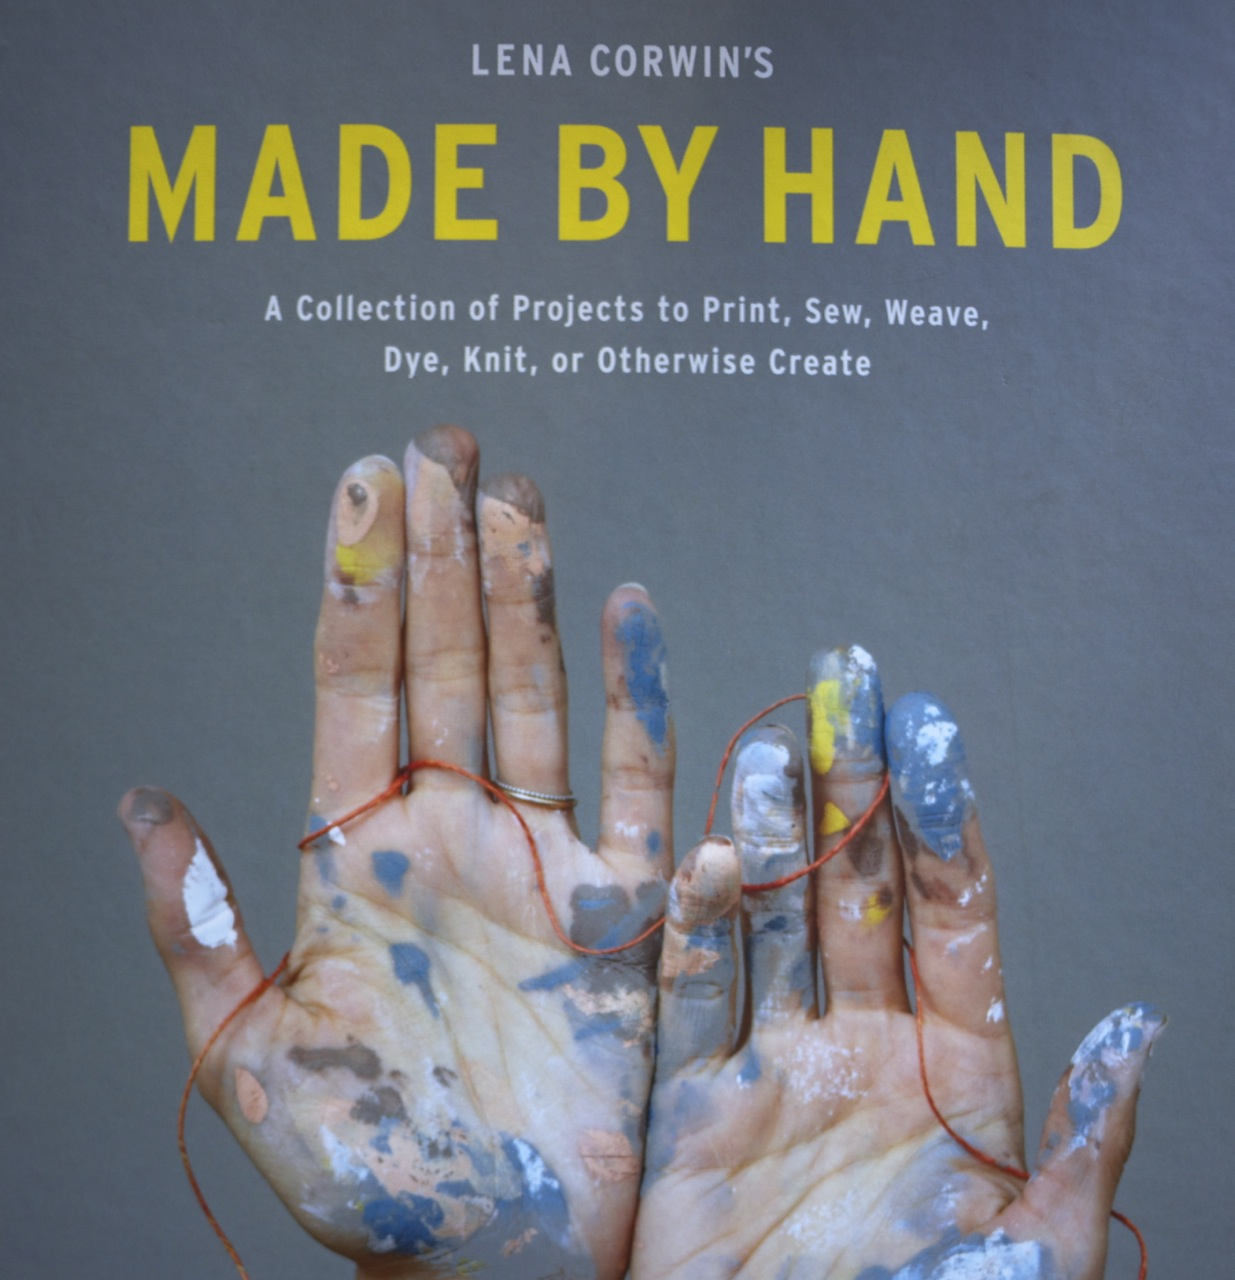 Made by Hand Book Review